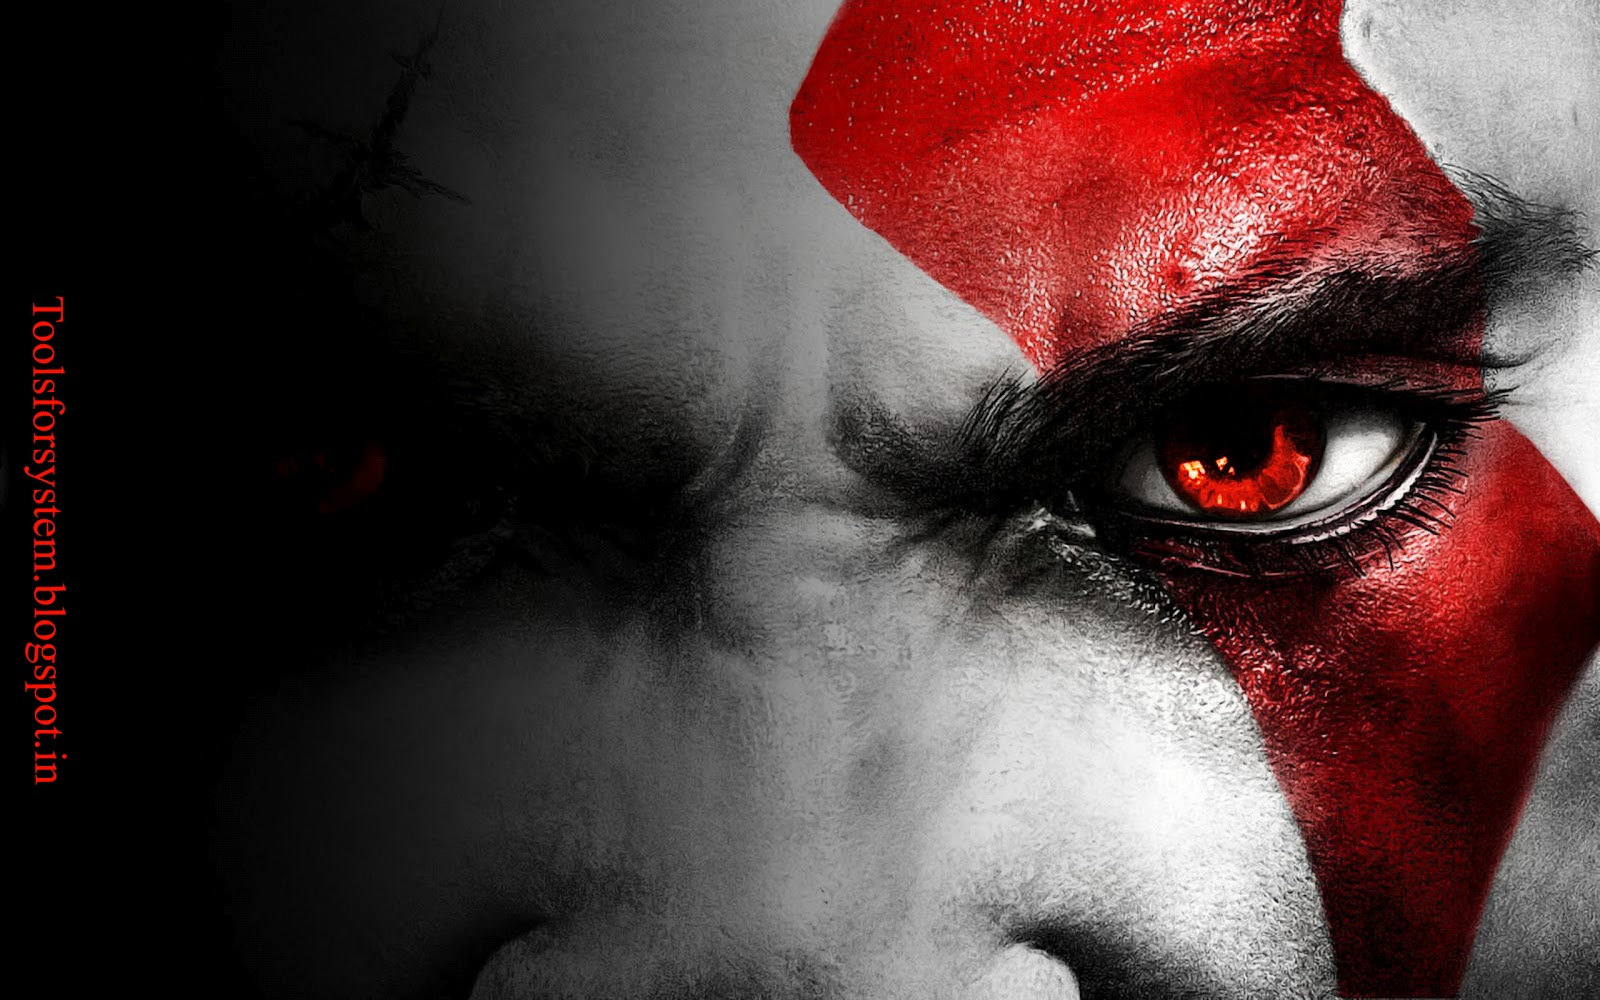 God of war 1 high comressed free download system tools - Best war wallpapers hd ...